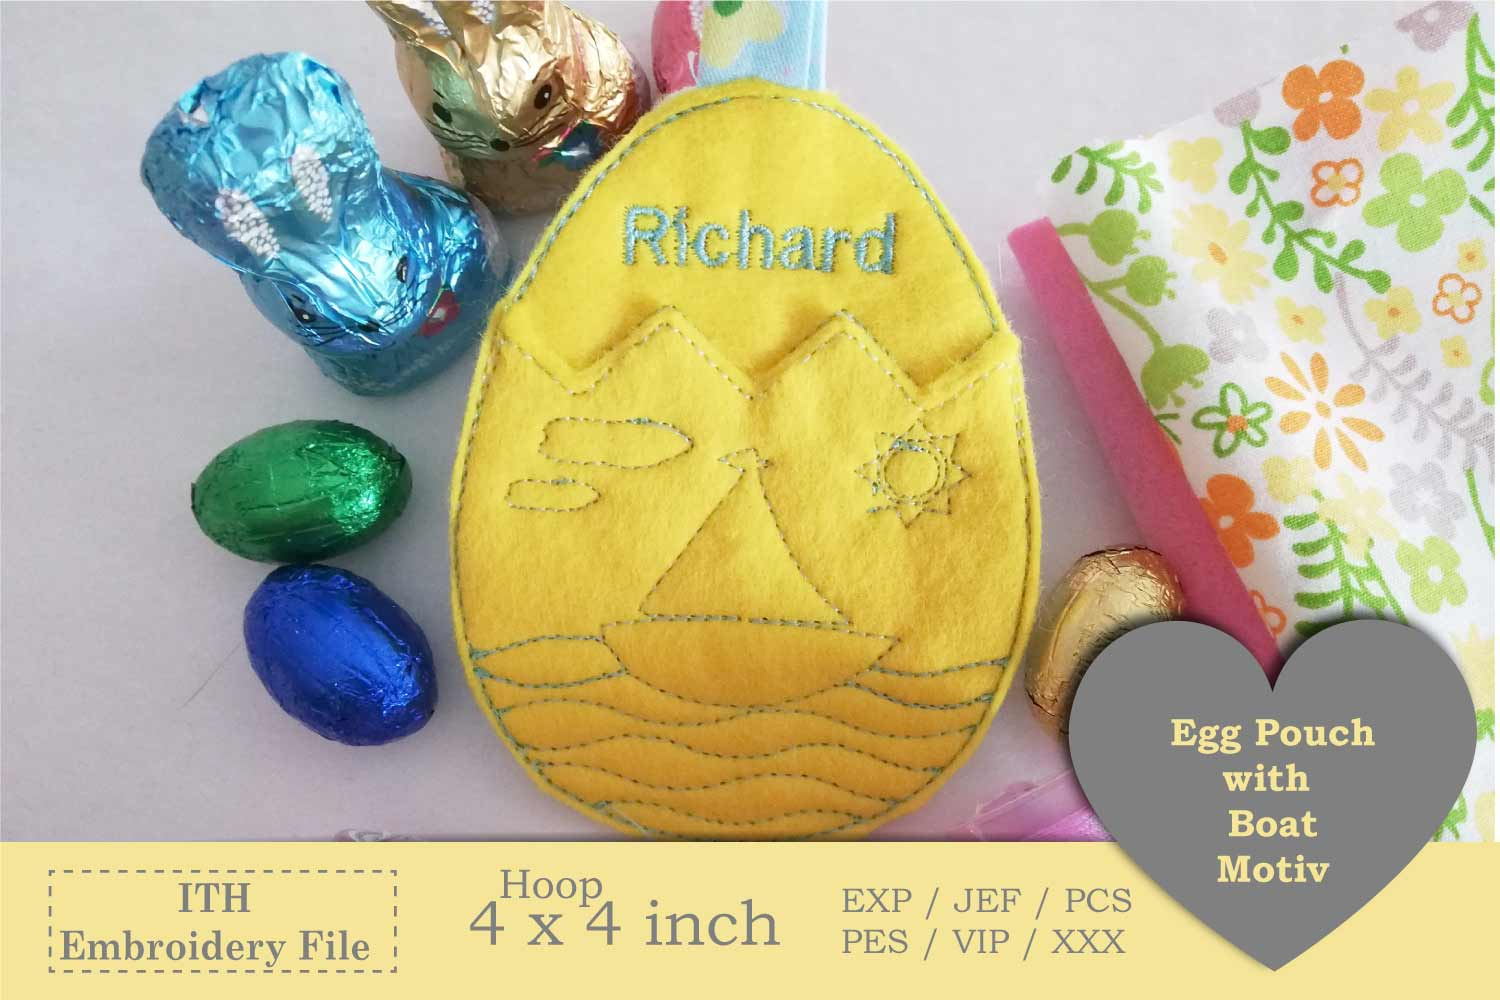 ITH - Egg Pouch with Sailboat Motive example image 2